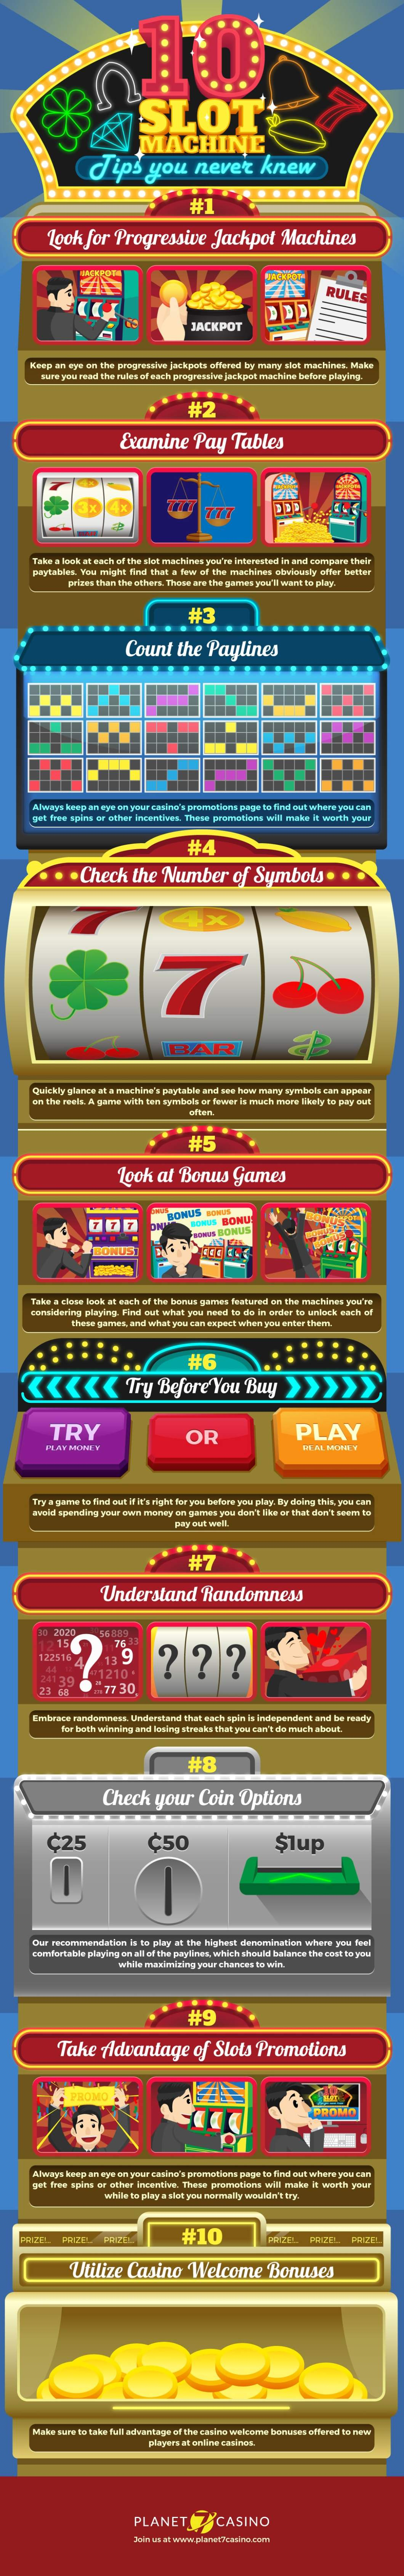 Winning at the Slot Machines: 10 Secret Tips - Infographic